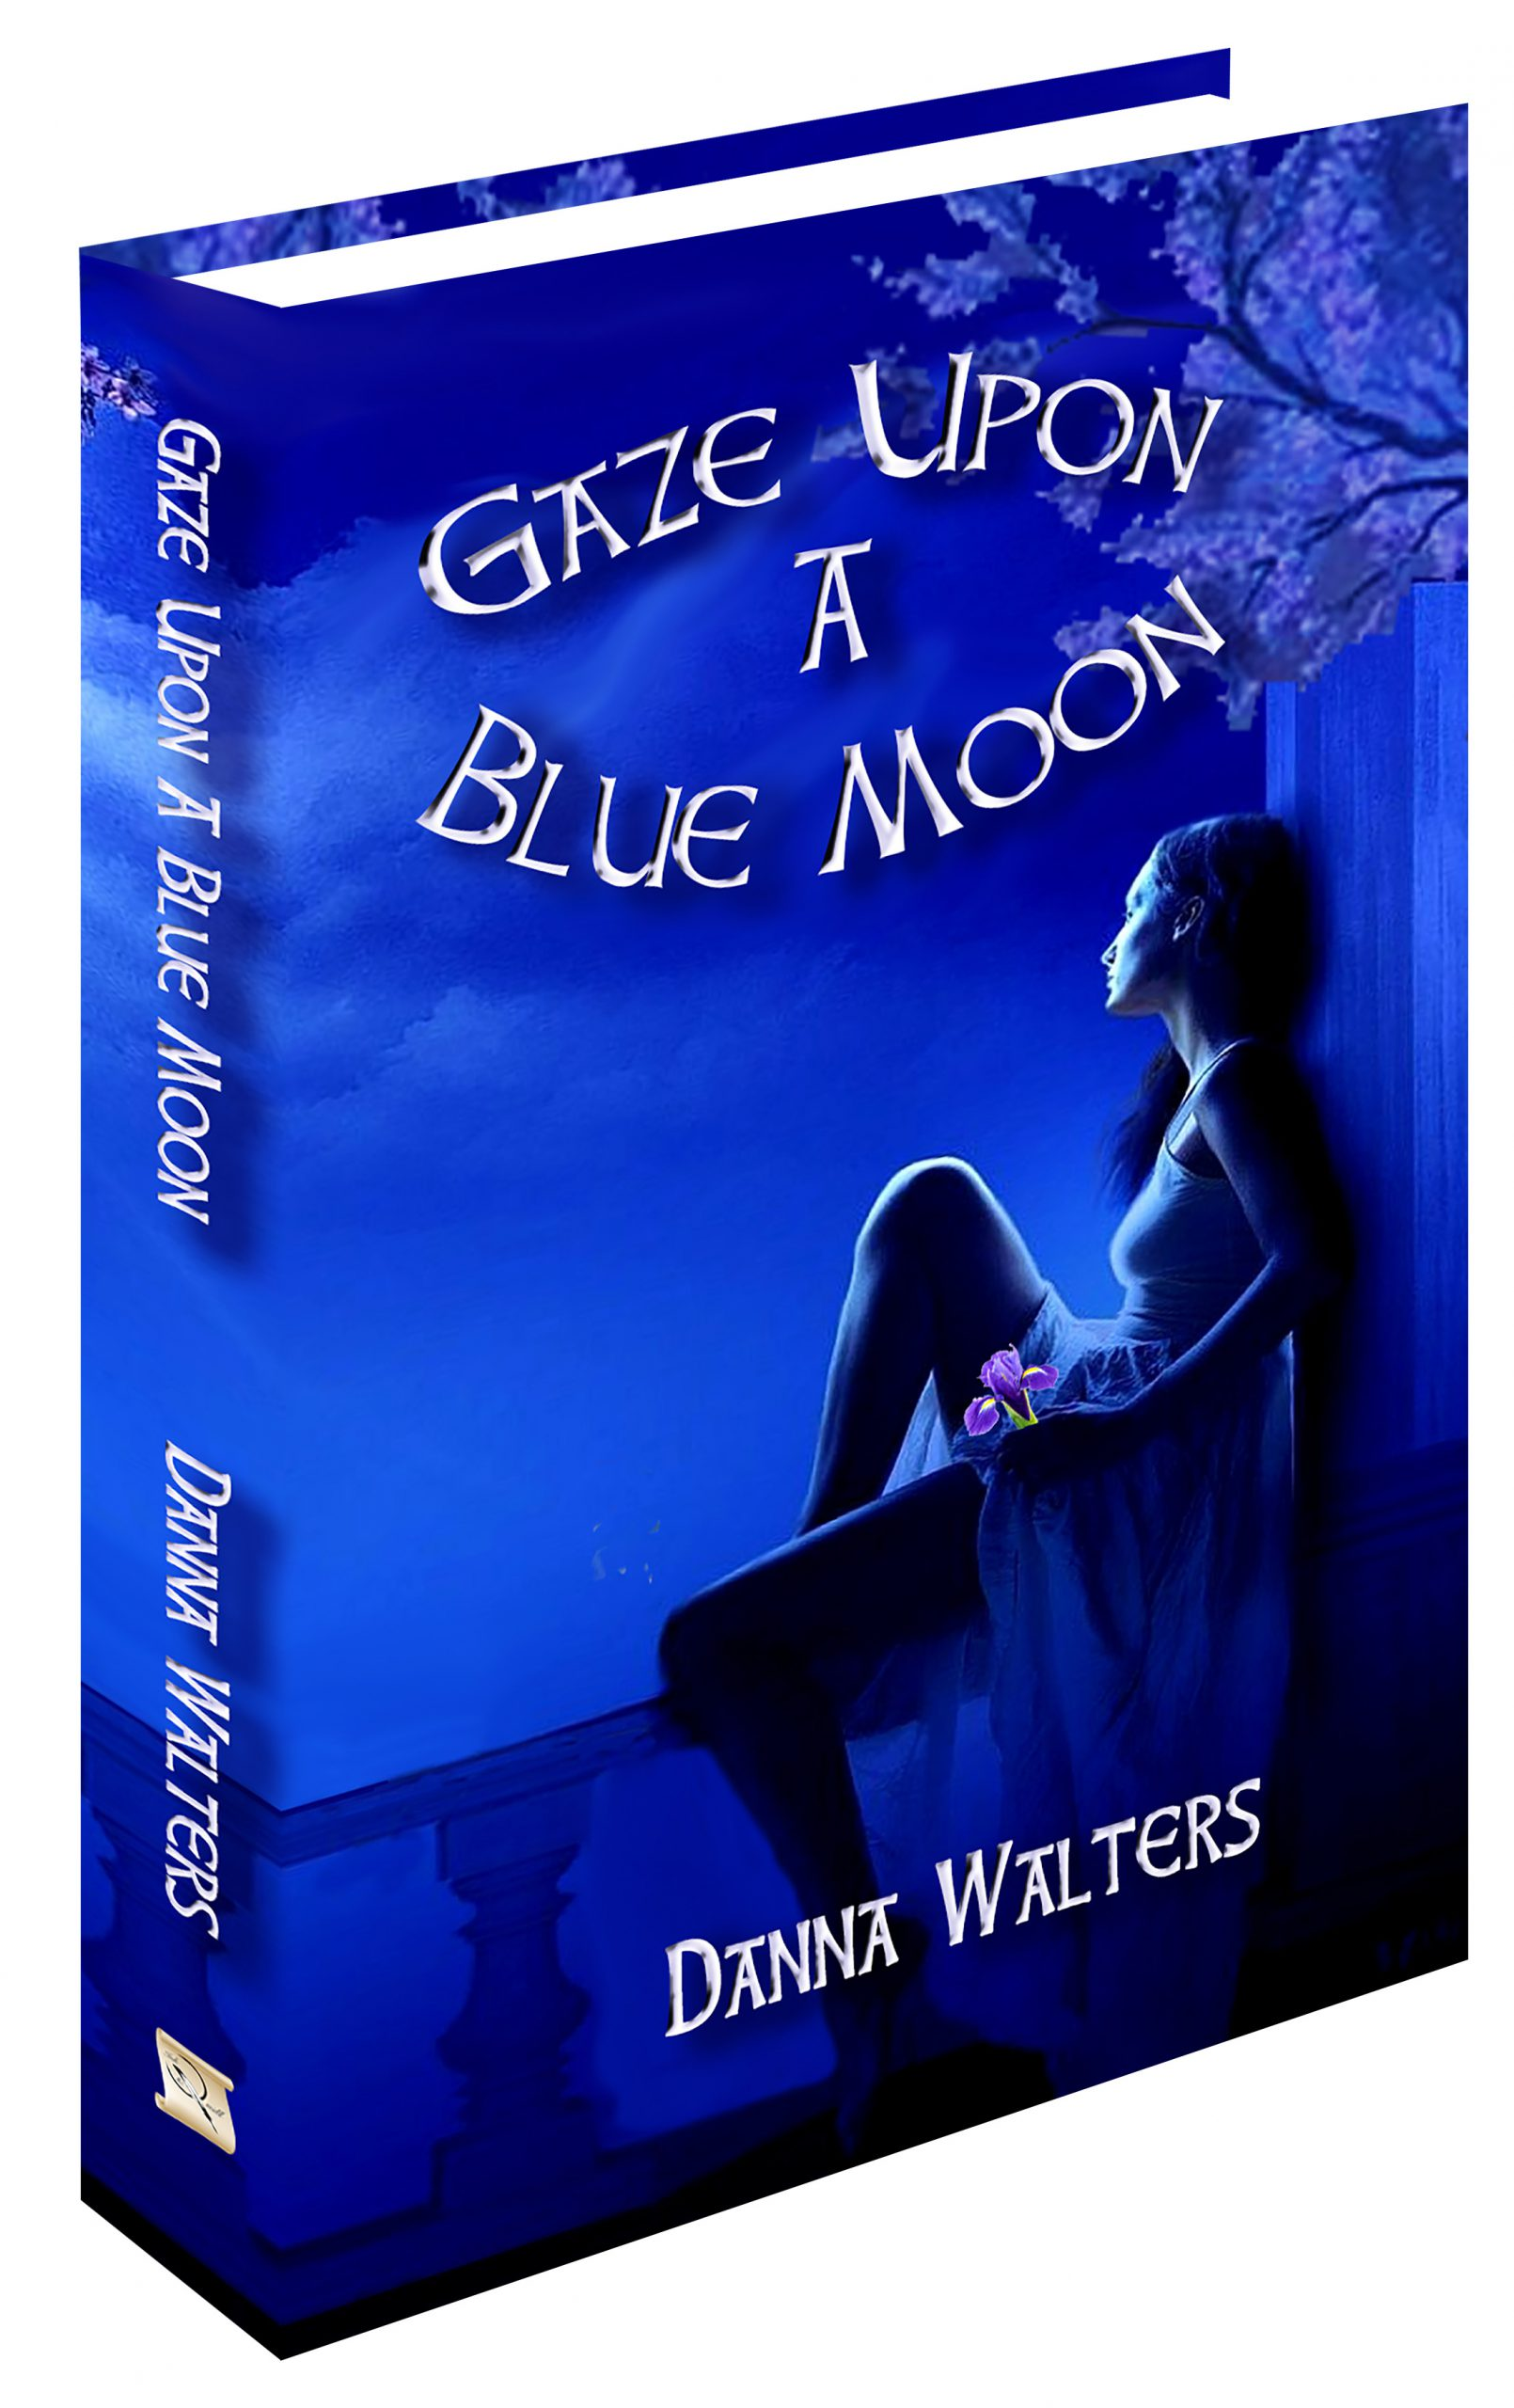 <b><i>Gaze Upon a Blue Moon</i></b> The Blue Moon Series Book One